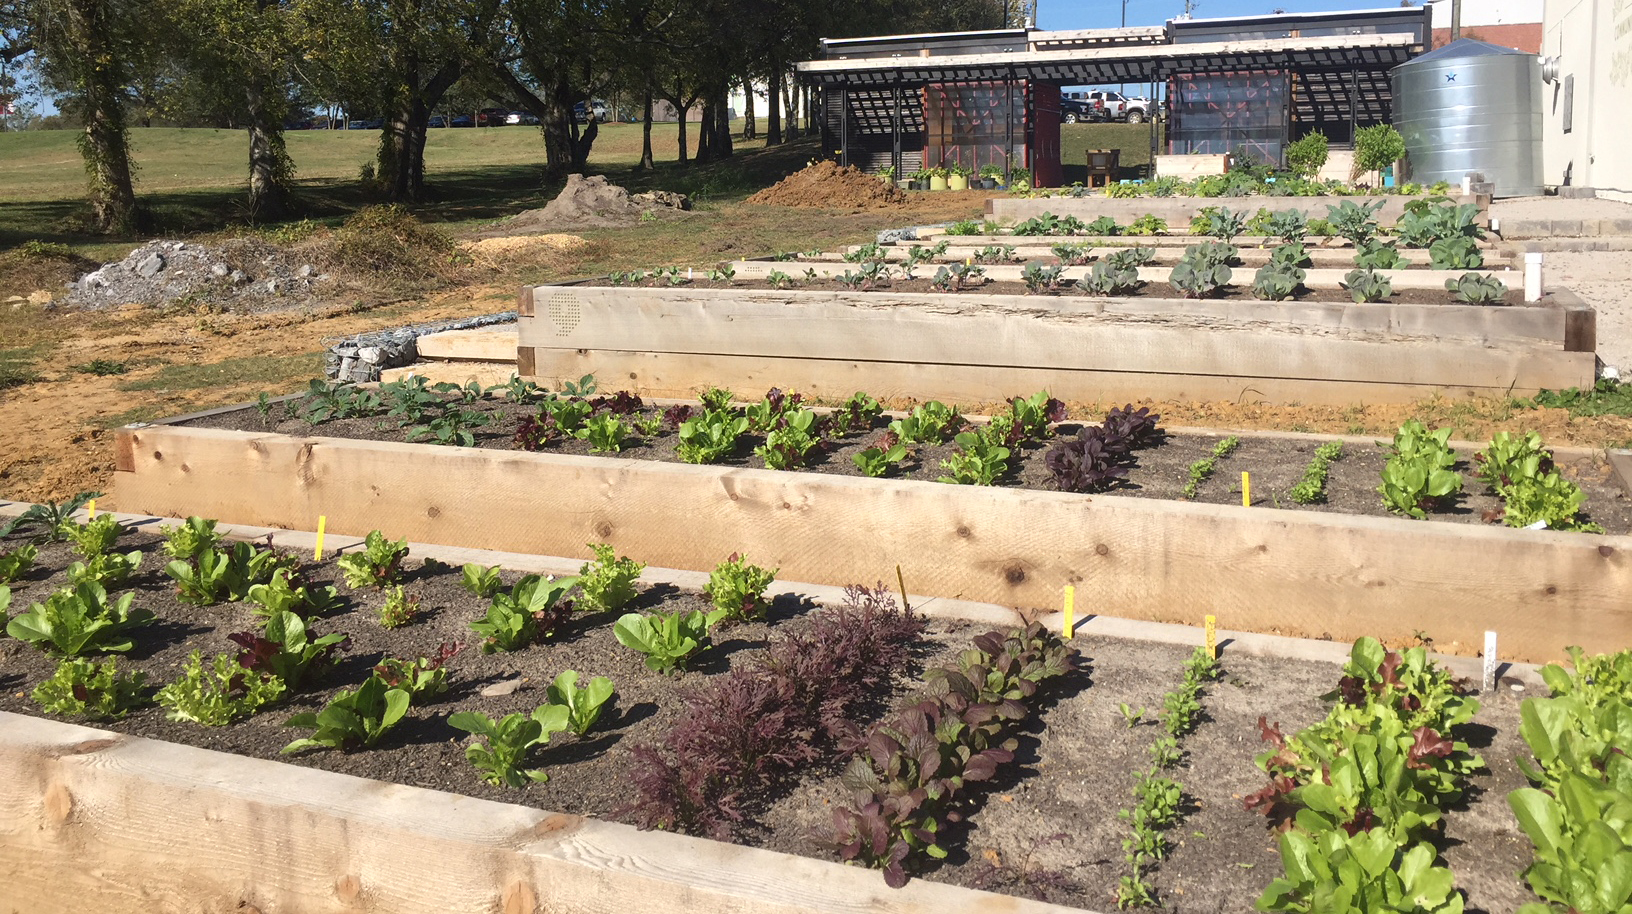 Wide shot shows MSU Community Garden with several raised garden beds planted with winter vegetables and lettuces.